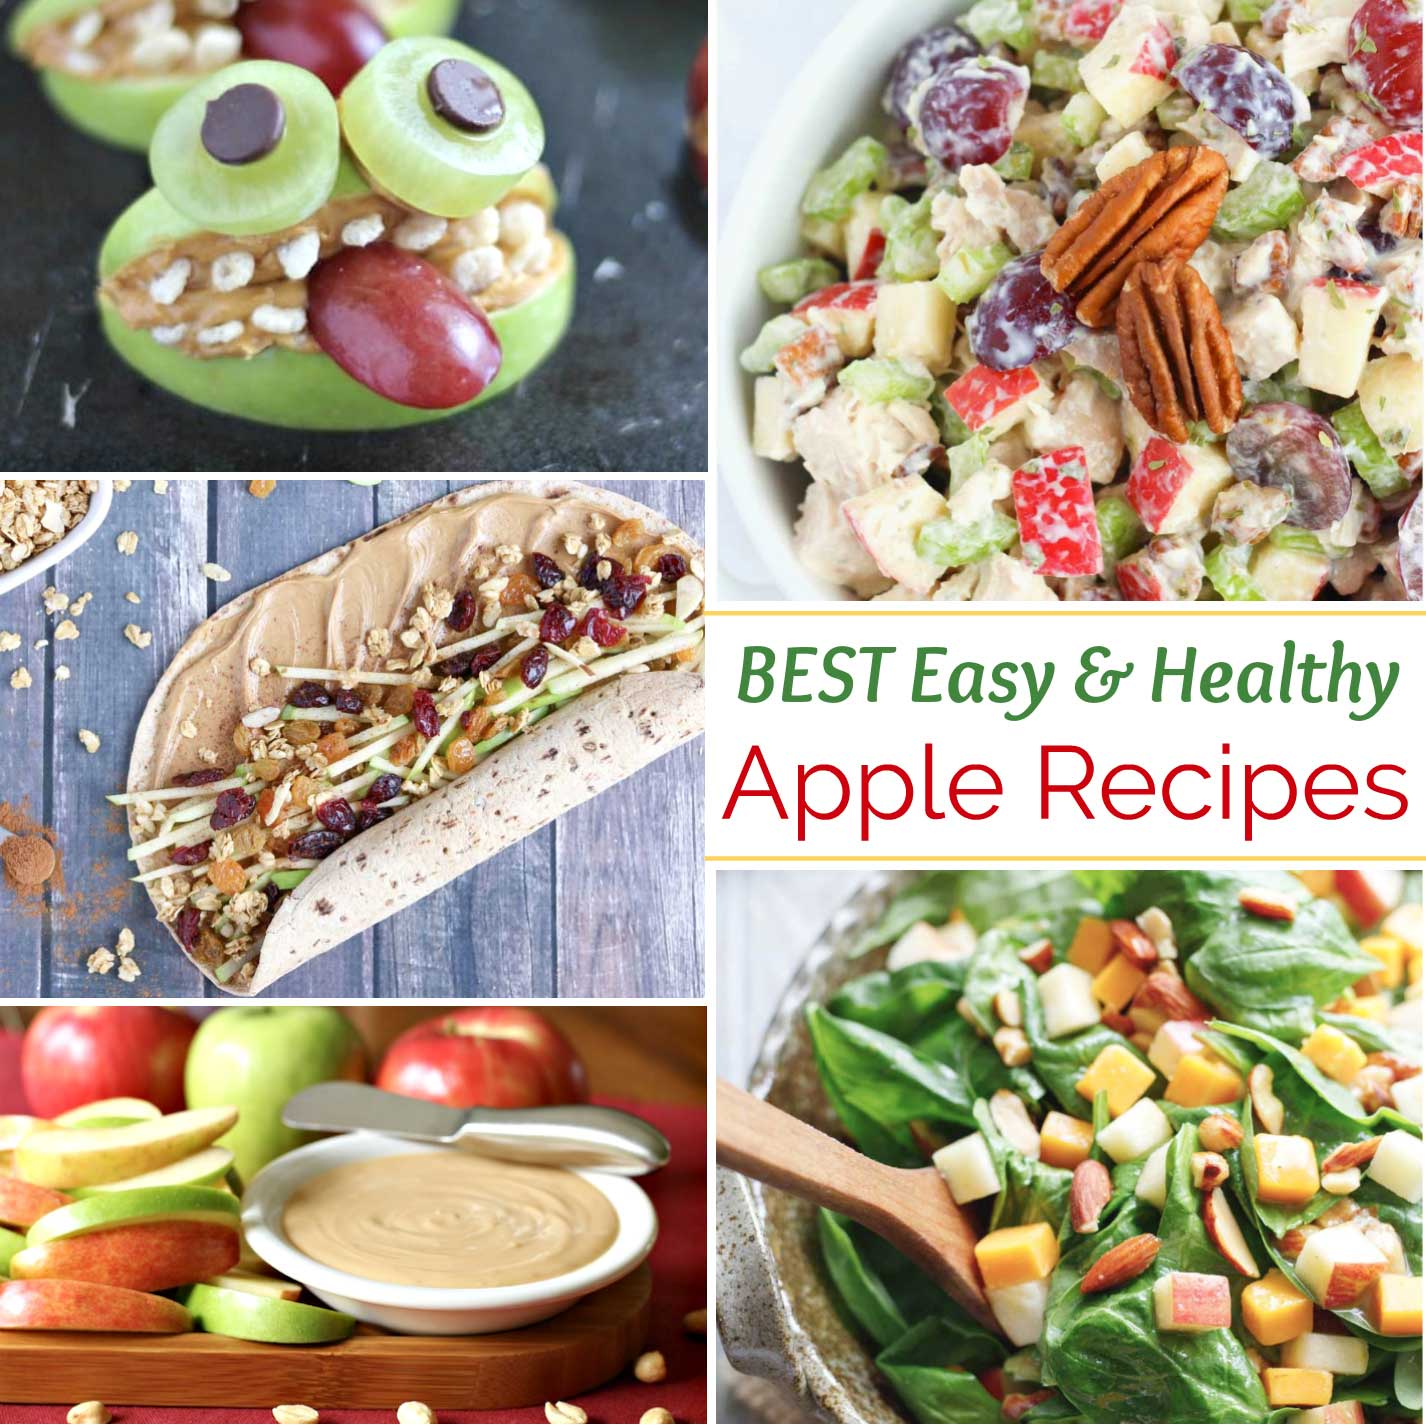 "collage of apple recipes photos with text overlay ""BEST Easy & Healthy Apple Recipes"""